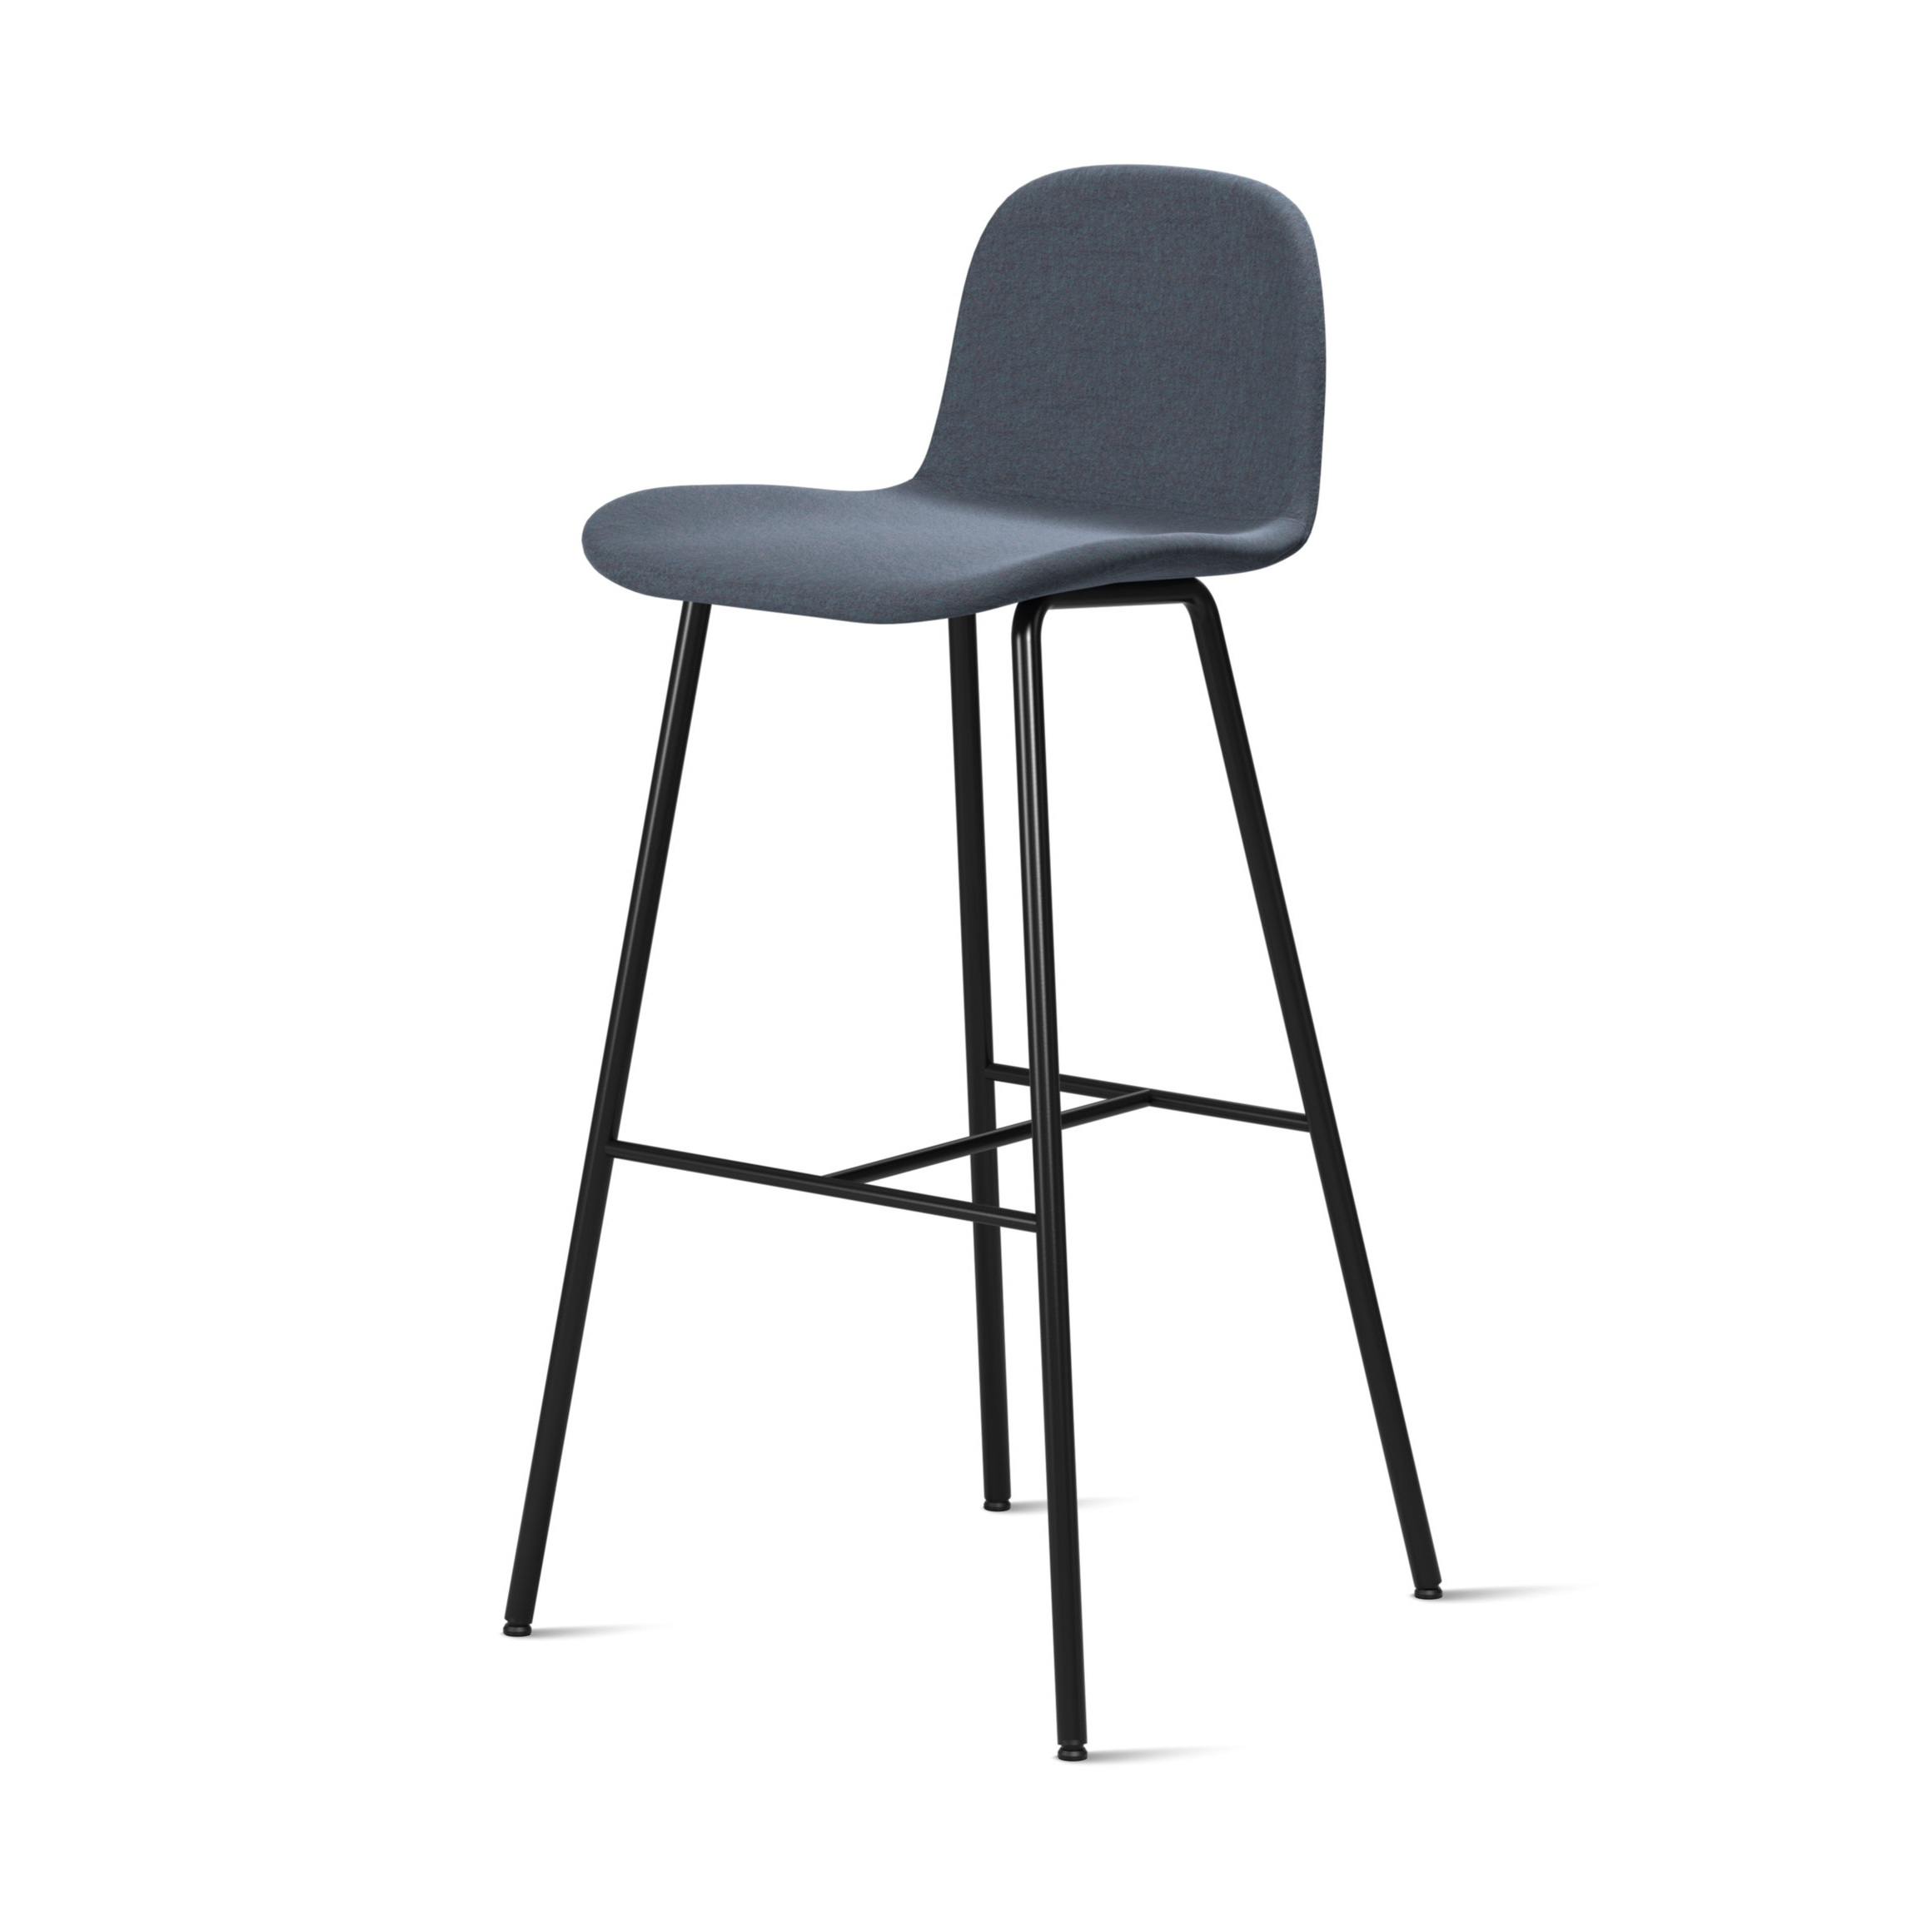 - DELI BARSTOOL by SKANDIFORM